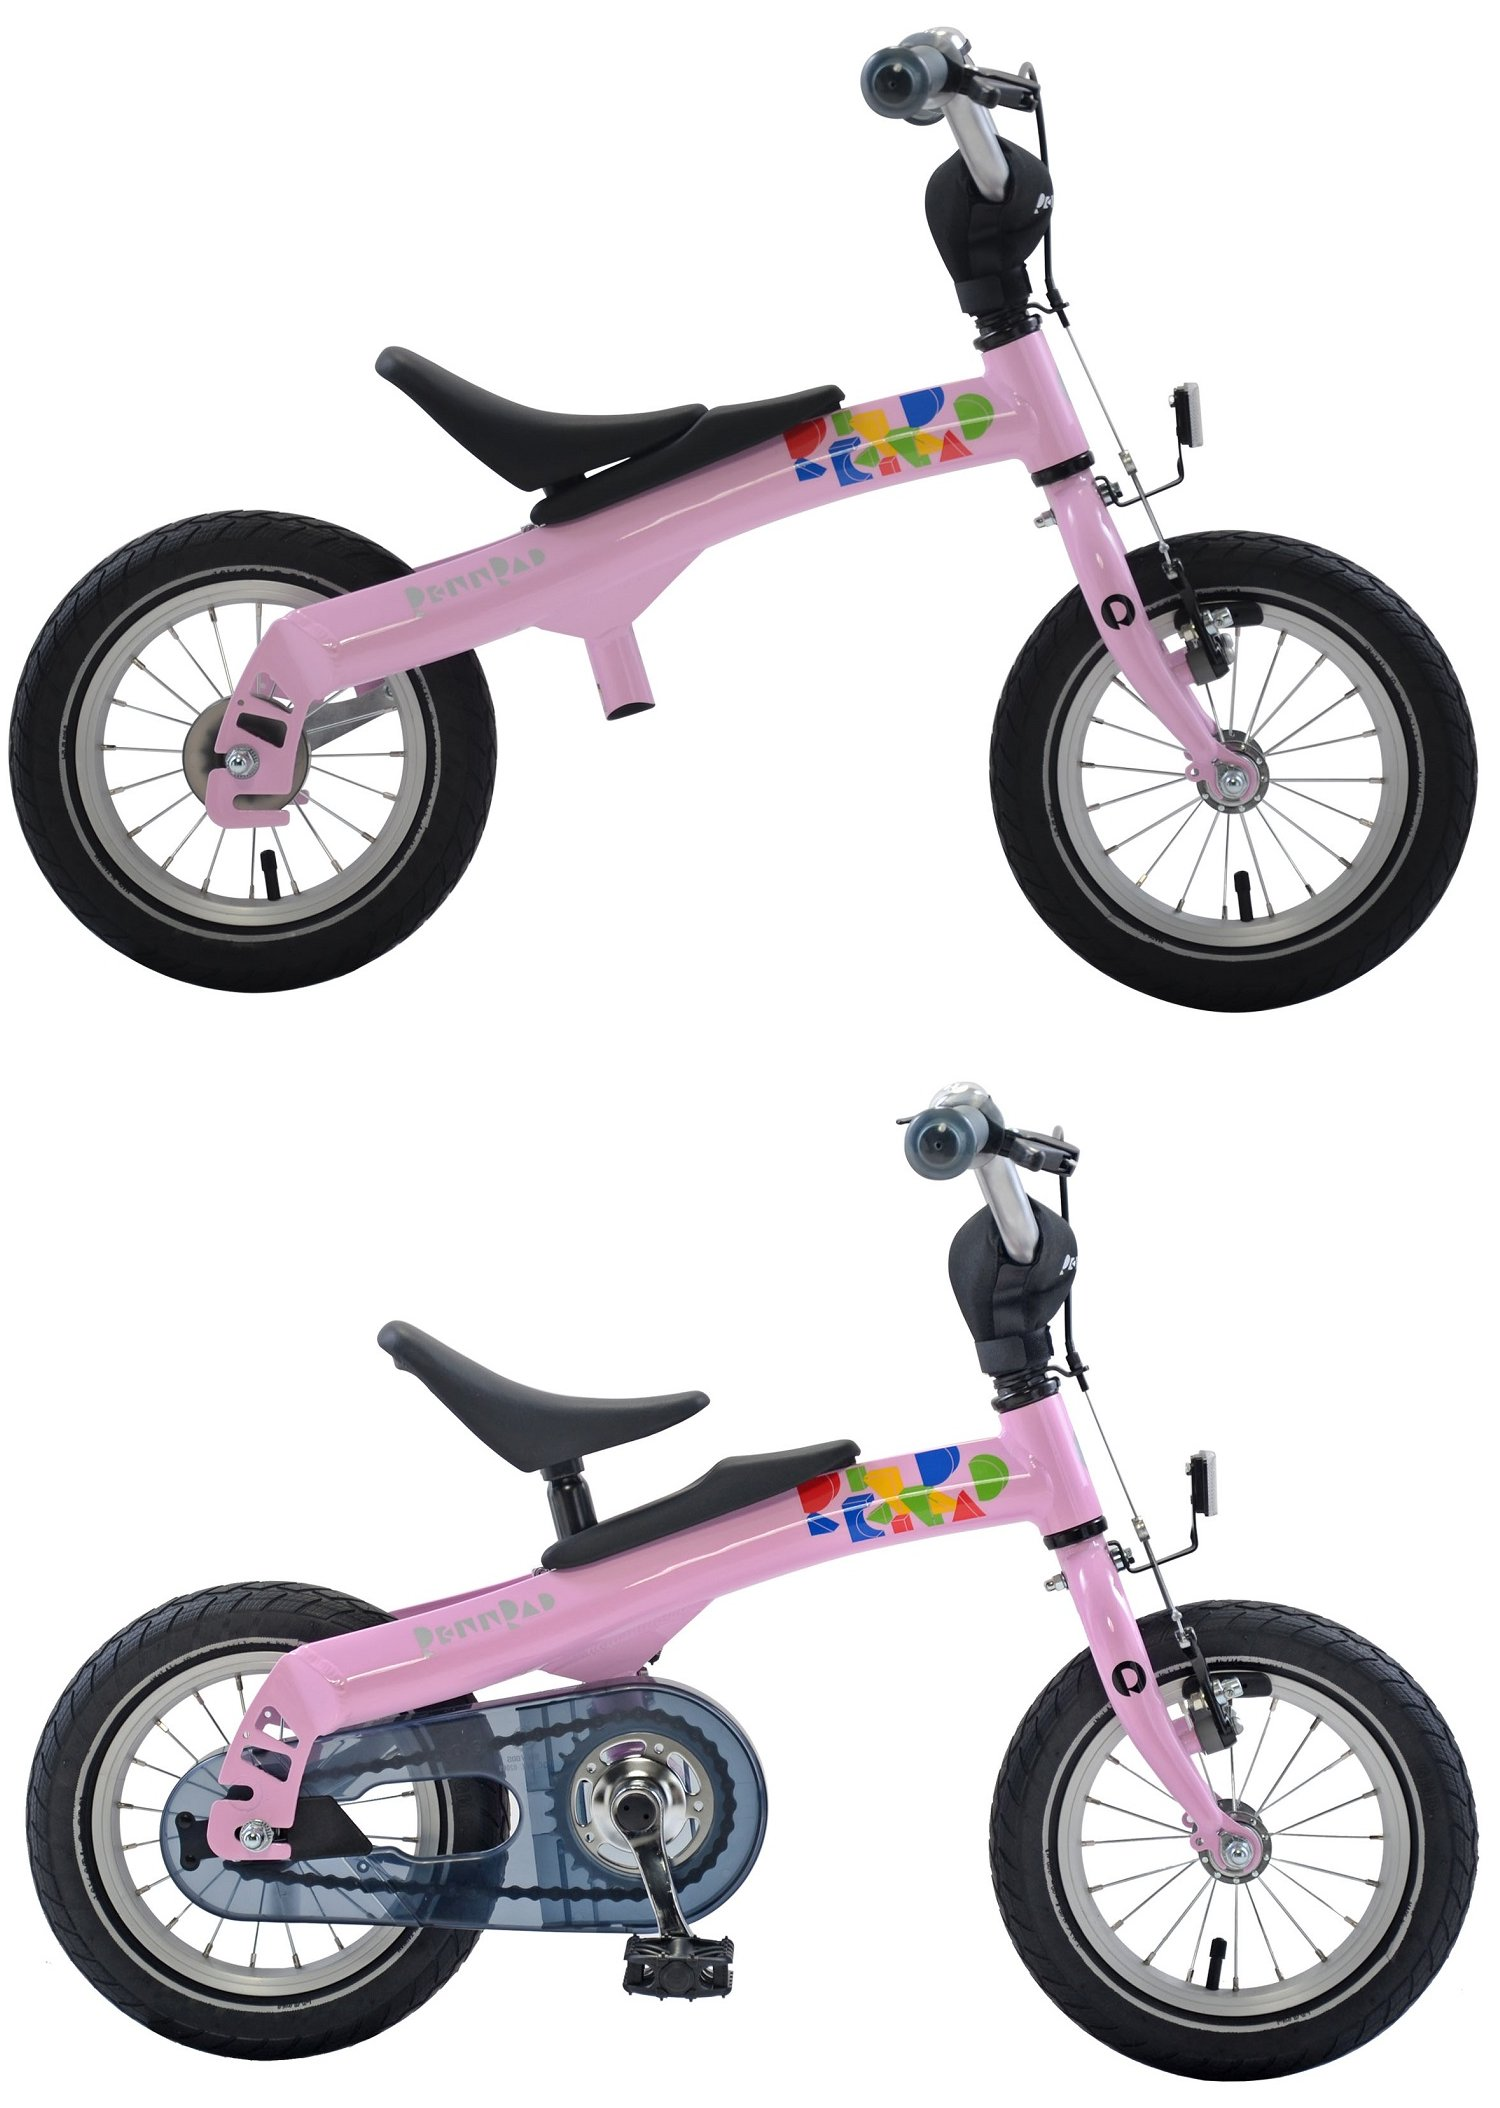 "RENNRAD 12"" Dual Mode Run / Ride Bike Pink"